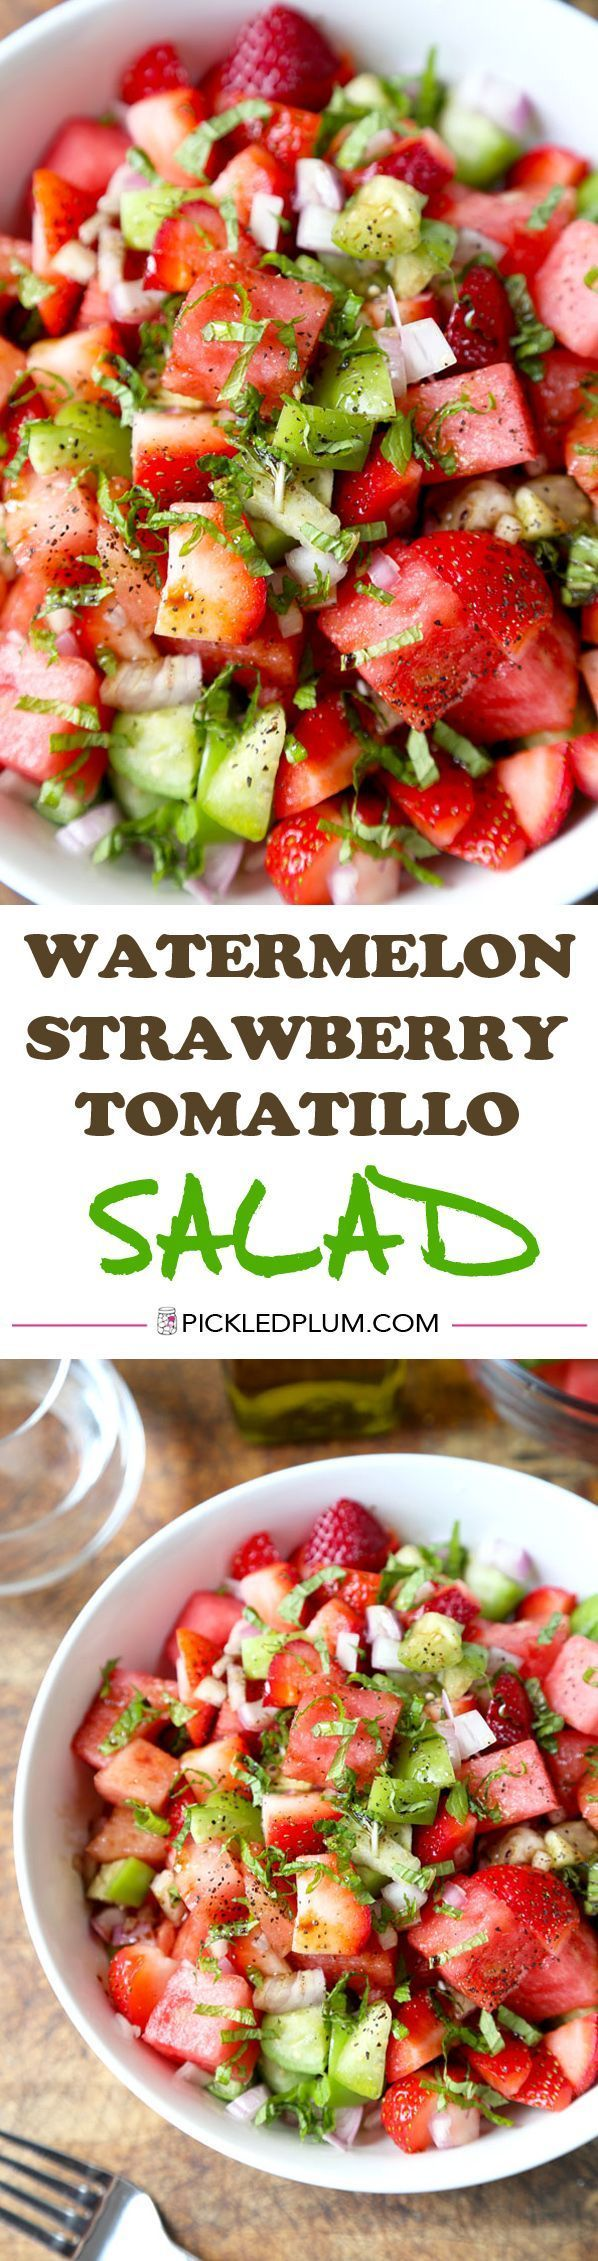 Watermelon, Strawberry & Tomatillo Salad - Only 10 minutes to make from start to finish and maybe the most refreshing salad you'll have this summer! Vegan and Gluten-Free Recipe  Read More by pickledplumfood